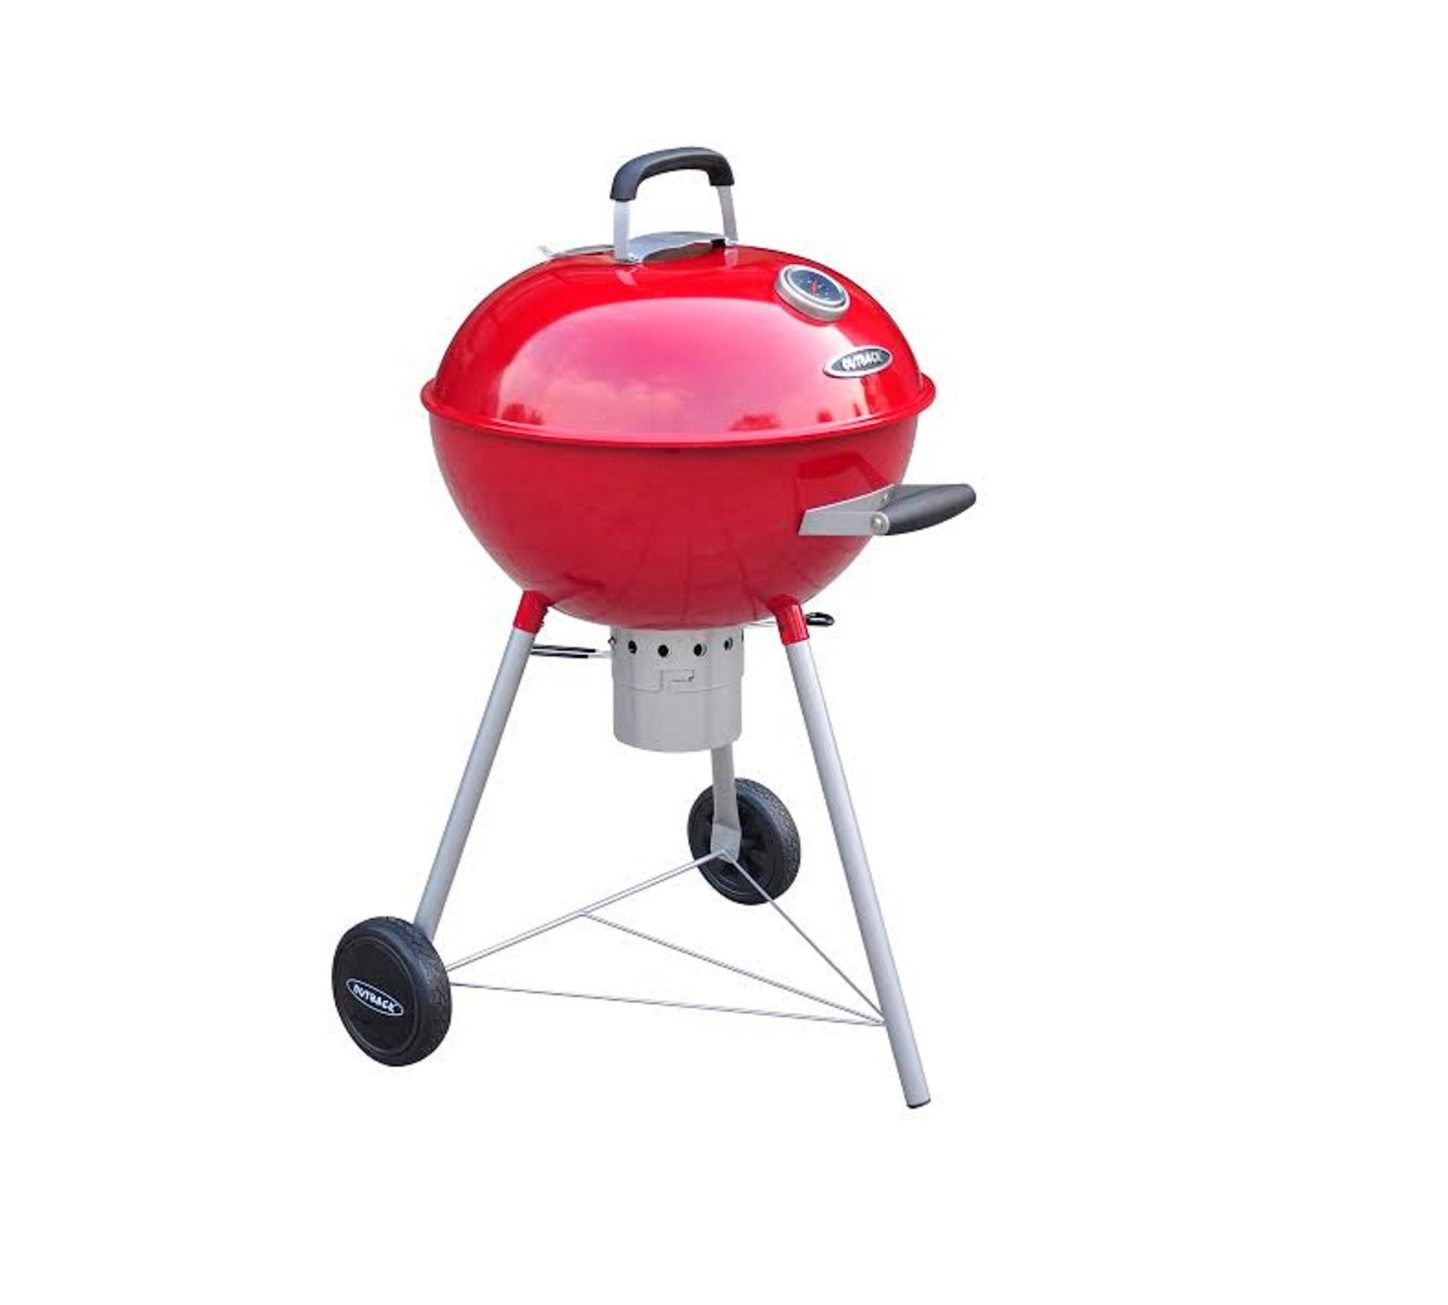 Outback Charcoal Kettle Red